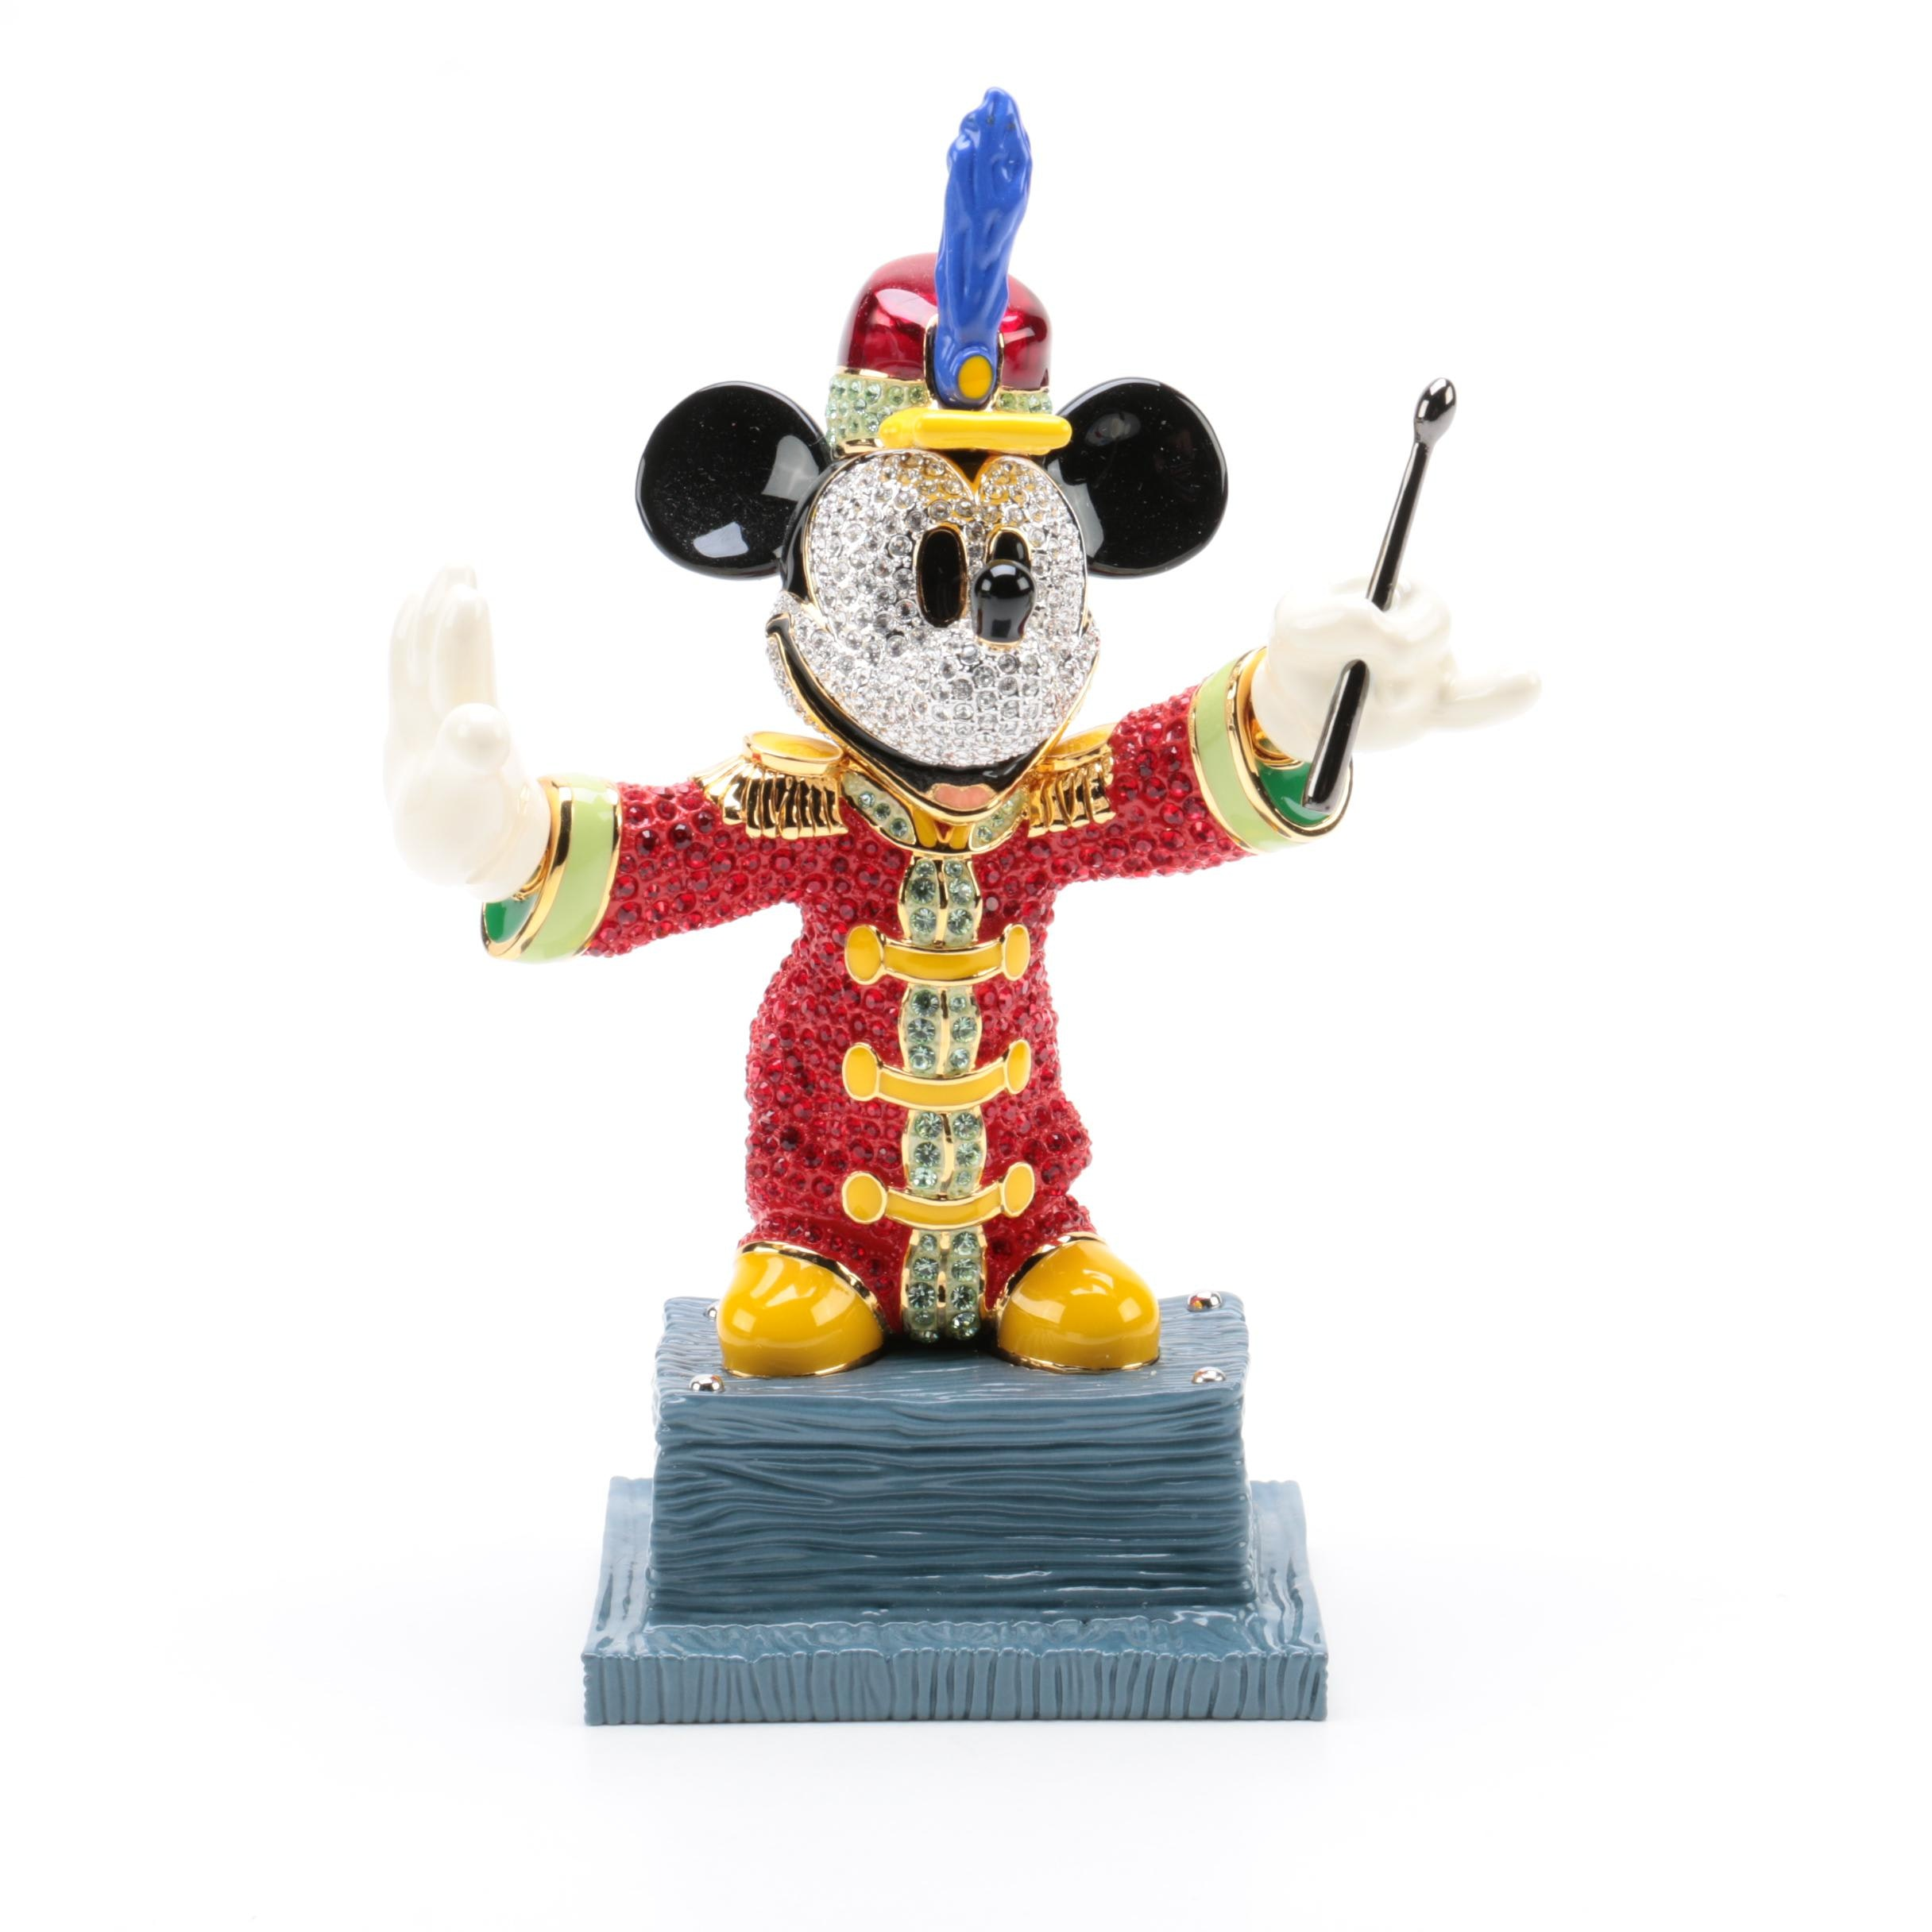 Mickey Mouse Figurine by Arribas Bros.